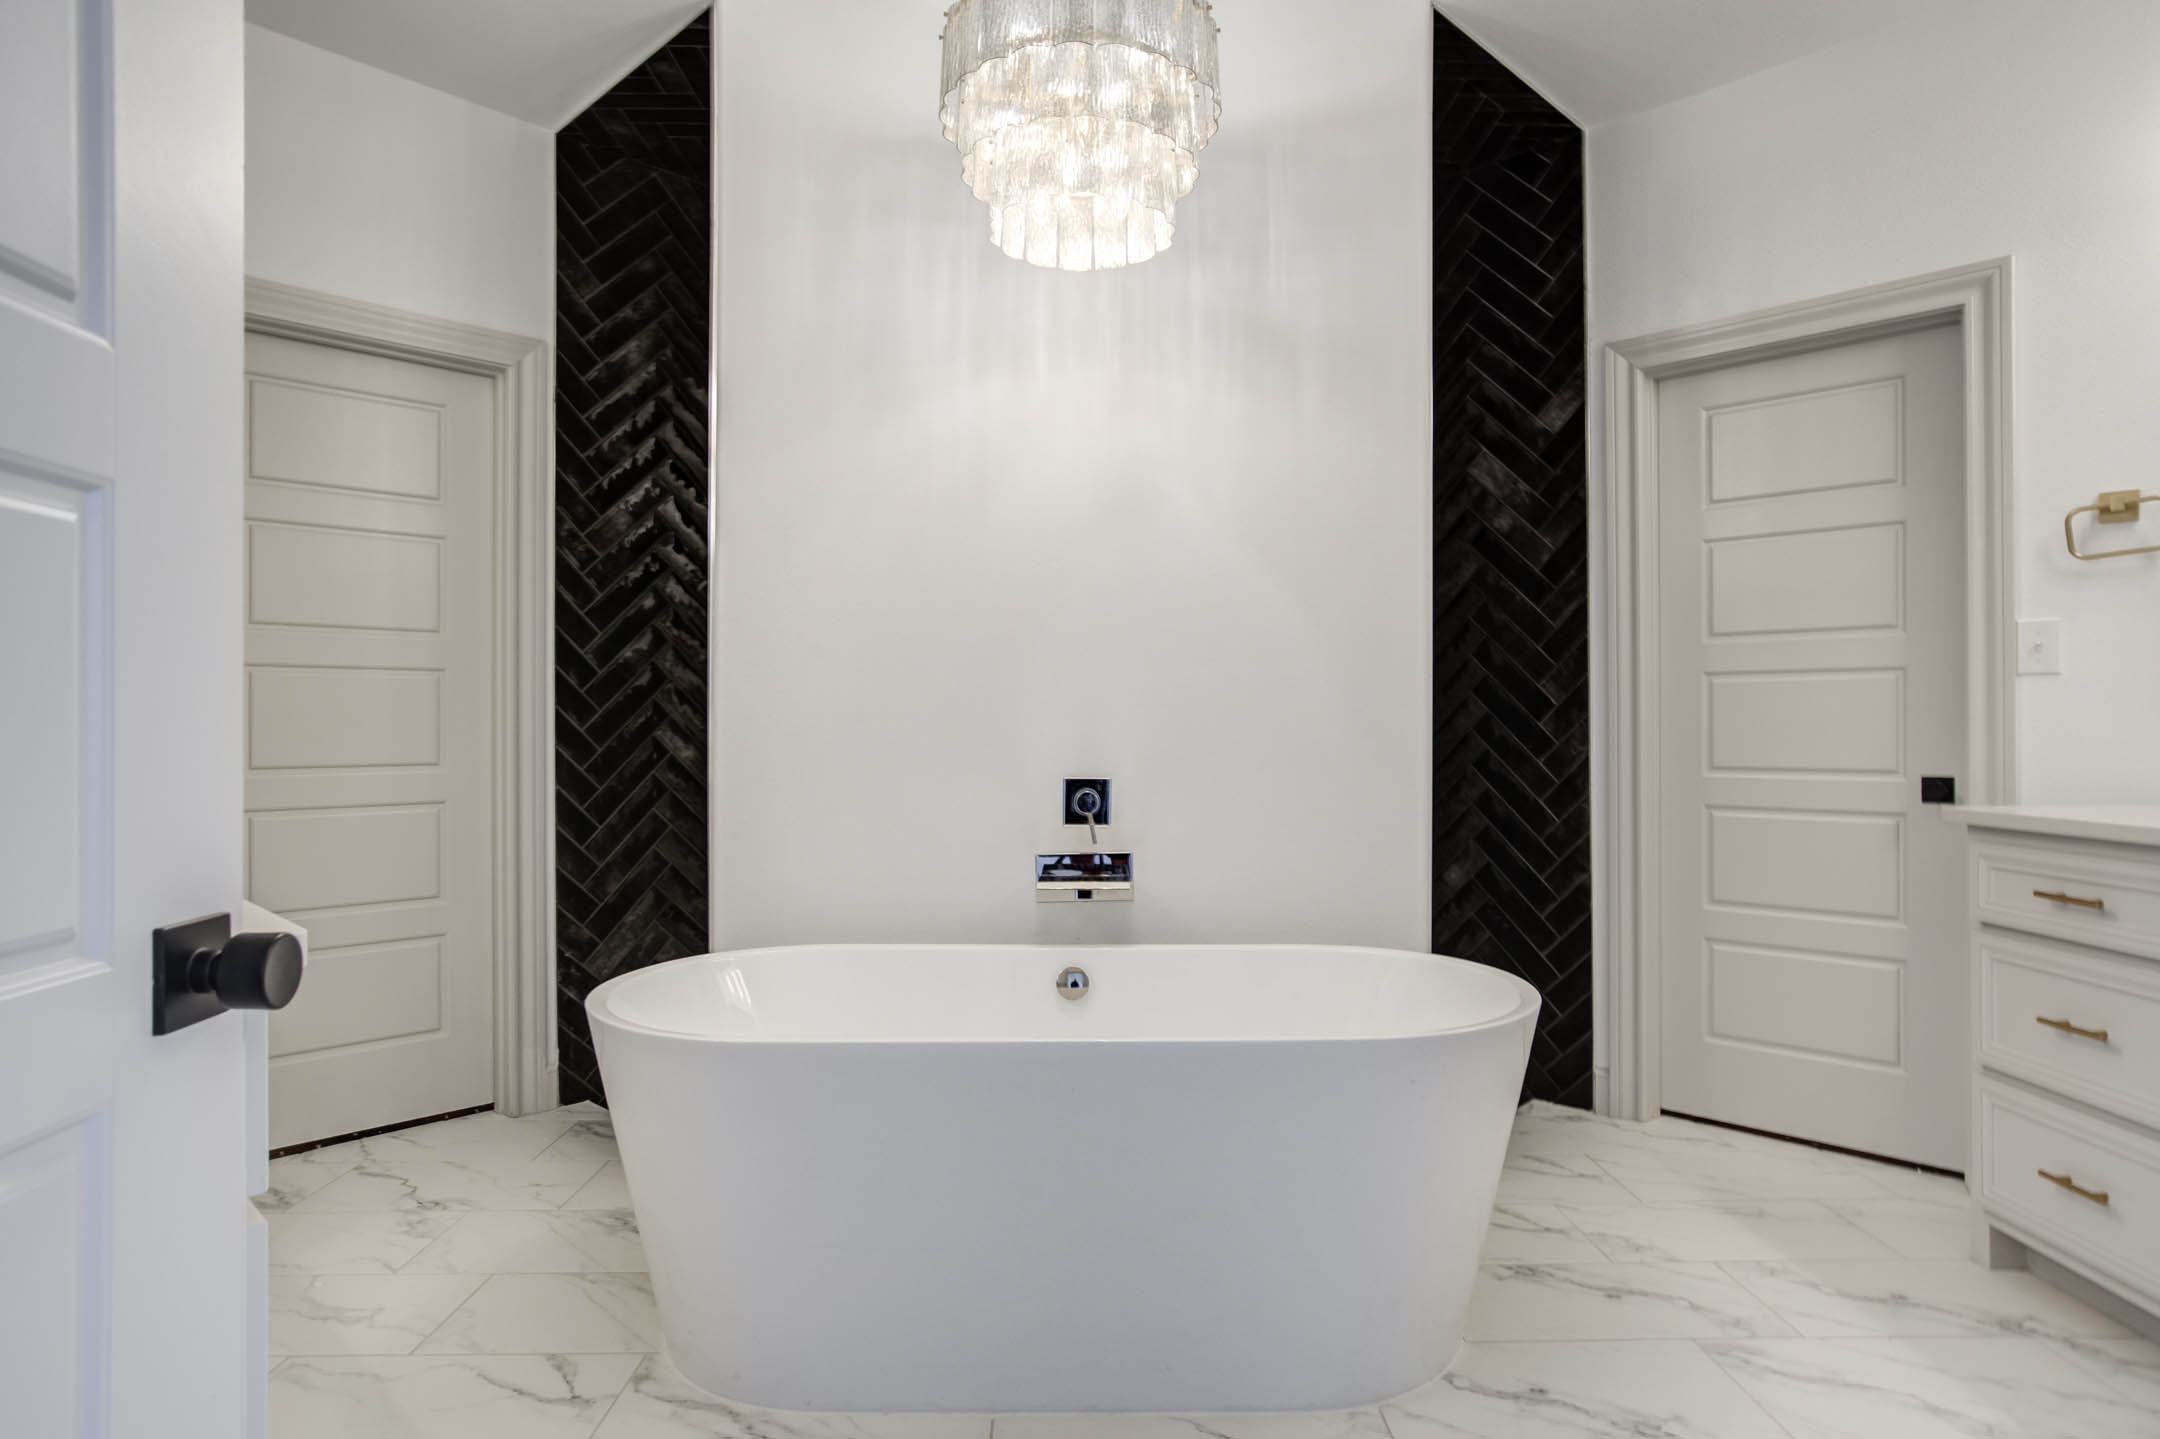 View of bathtub of master bath in beautiful home near Lubbock, Texas.